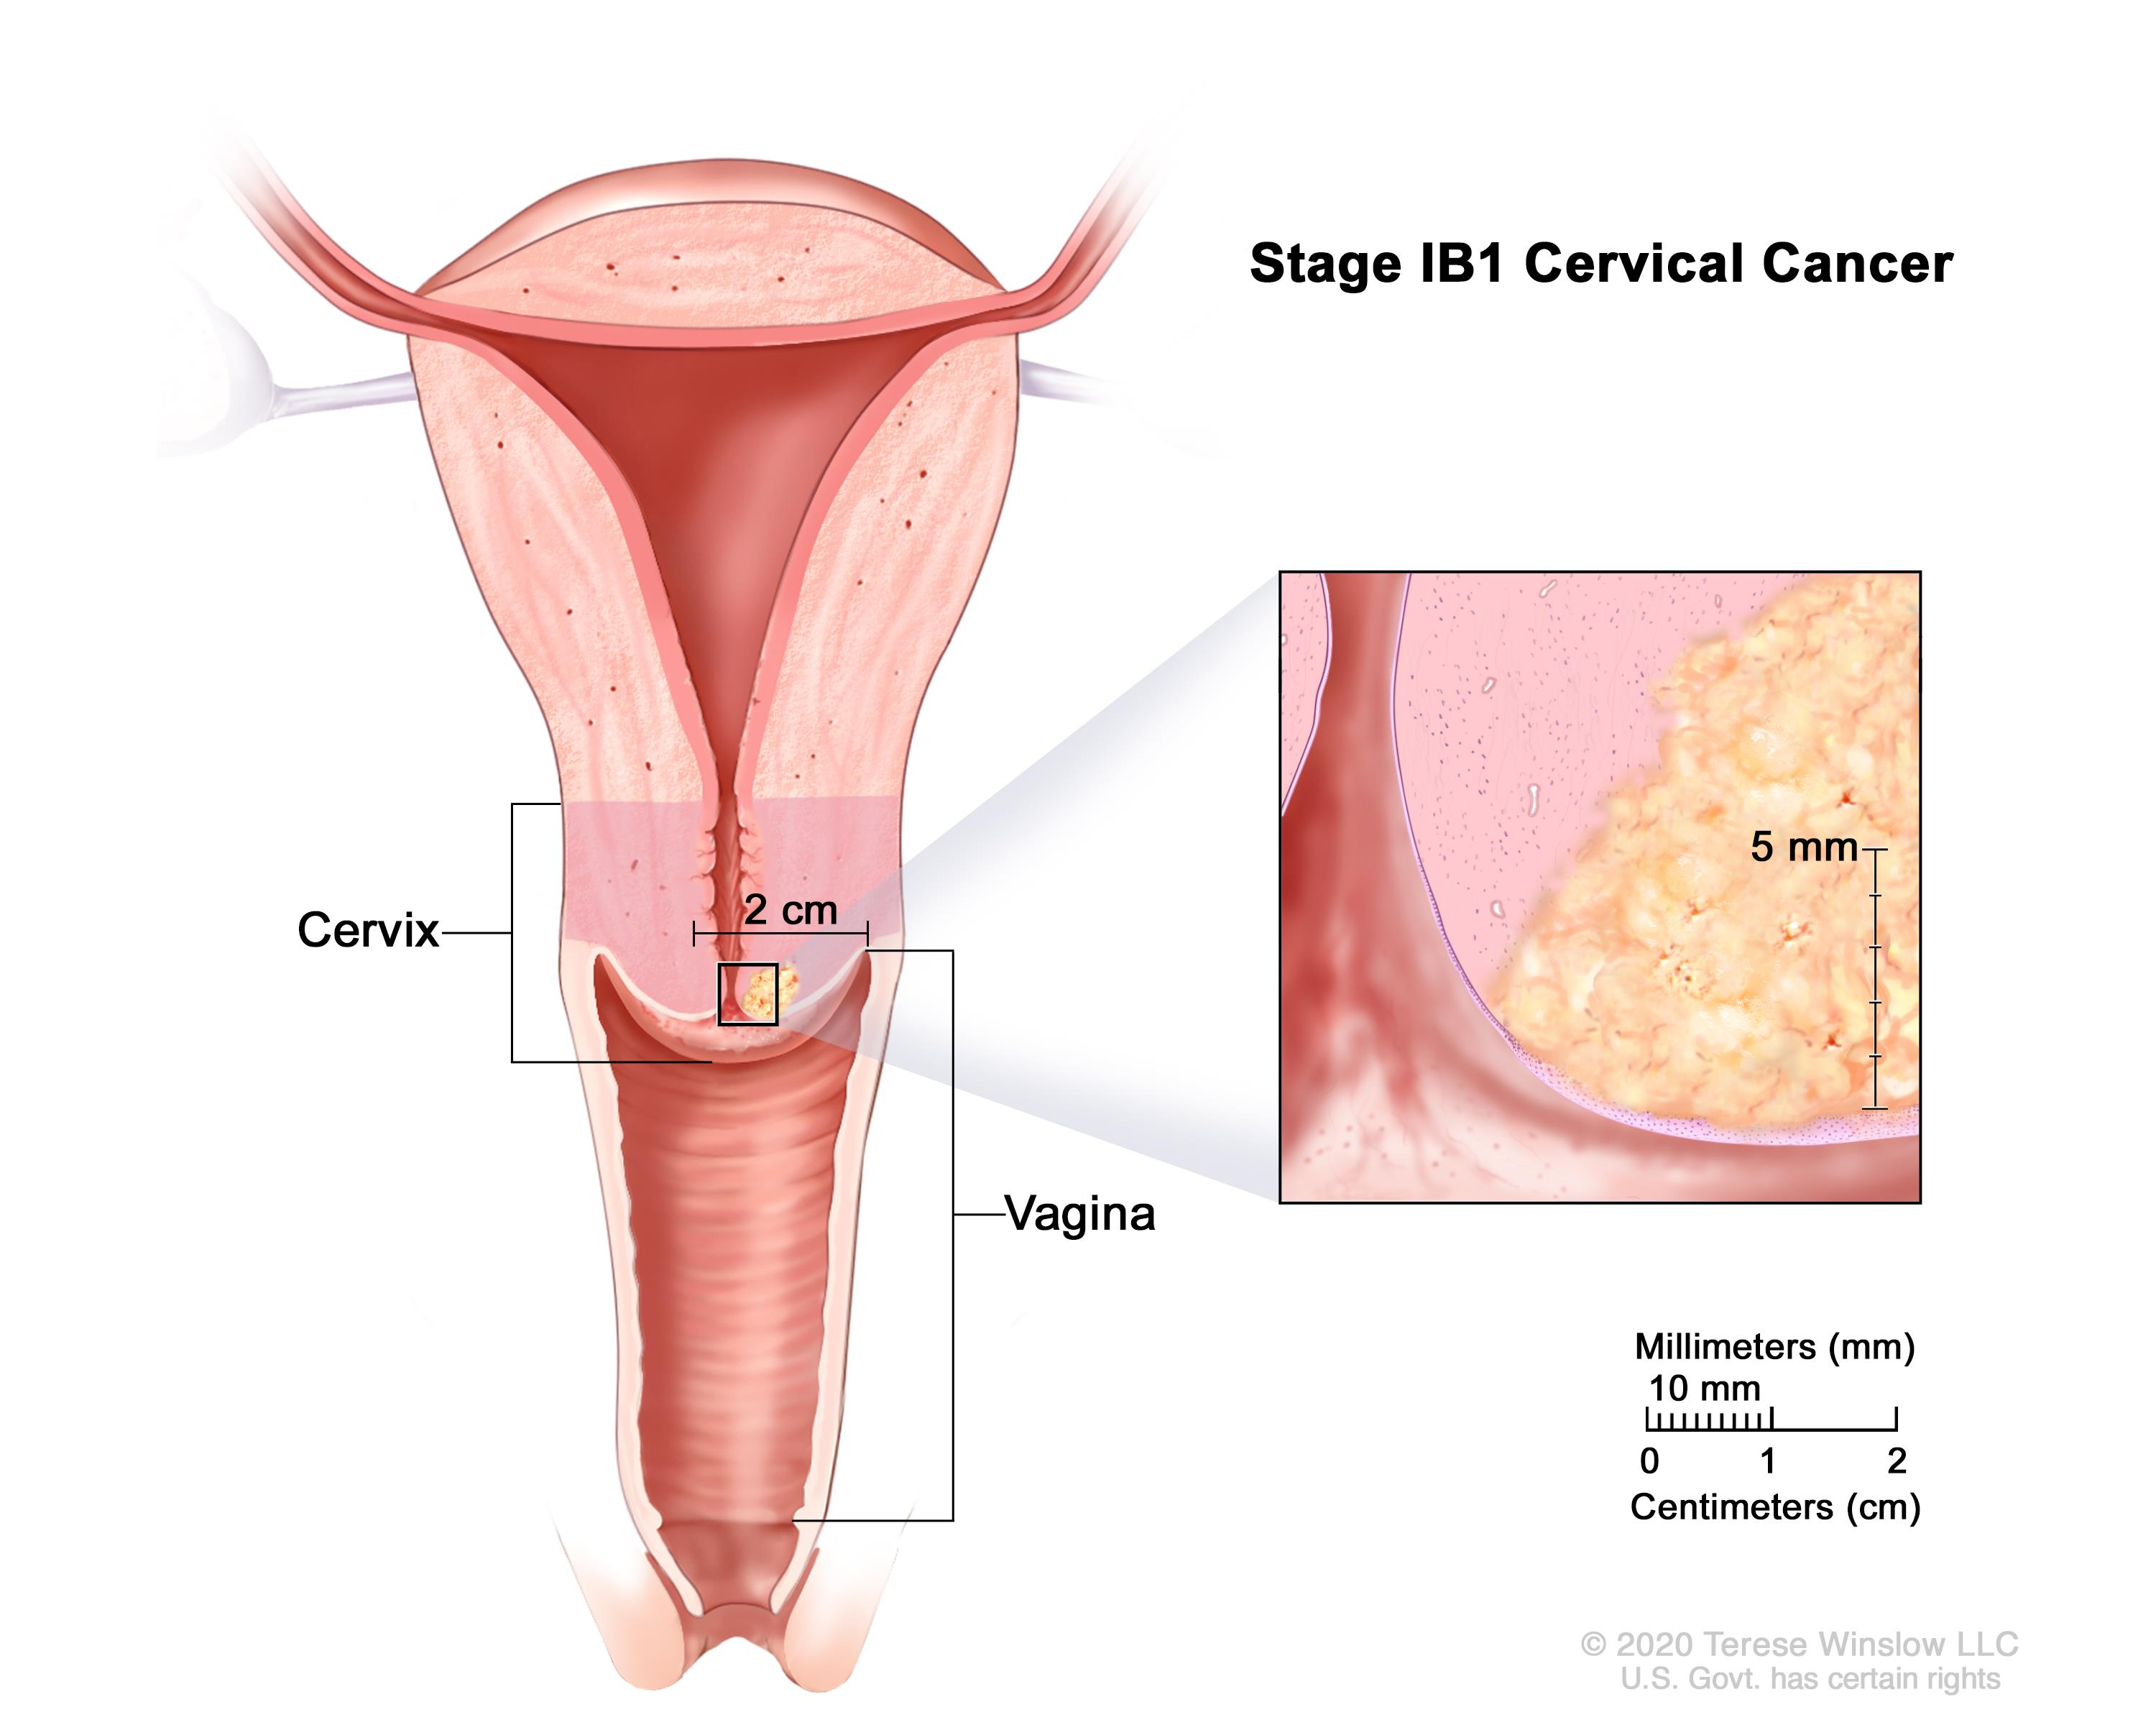 Stage IB1 and IB2 cervical cancer shown in three cross-section drawings of the cervix and vagina. An inset on the left shows stage IB1 cancer that is 7 mm wide and more than 5 mm deep. Drawing in the middle shows stage IB1 cancer that is smaller than 4 cm. Drawing on the right shows stage IB2 cancer that is larger than 4 cm.